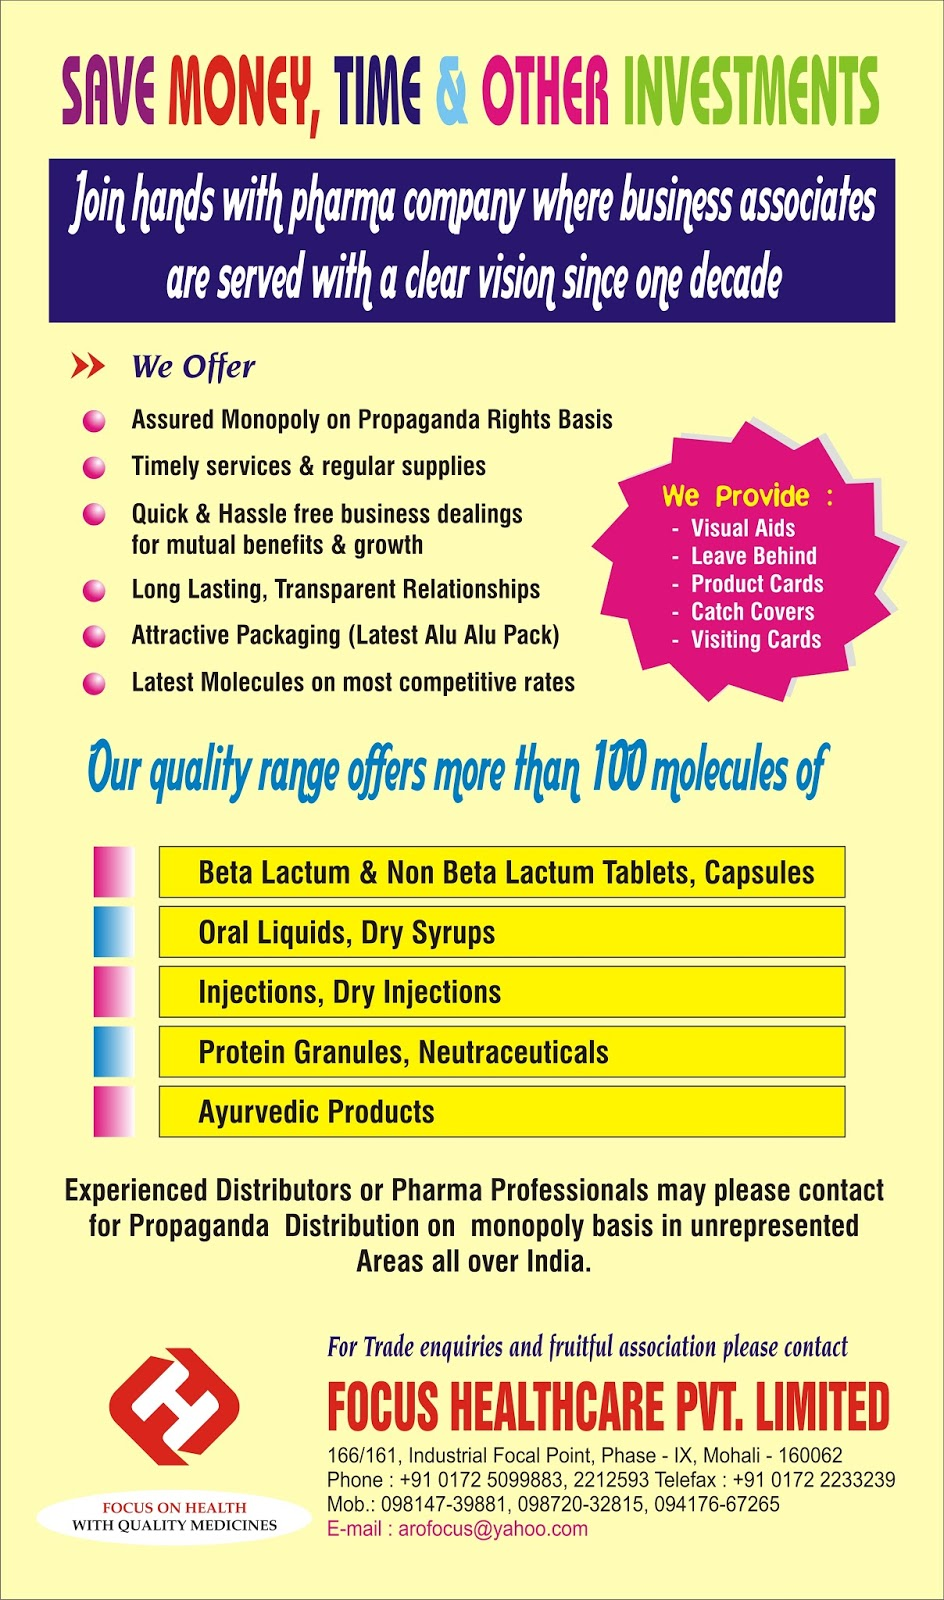 Focus Healthcare Pvt. Ltd.